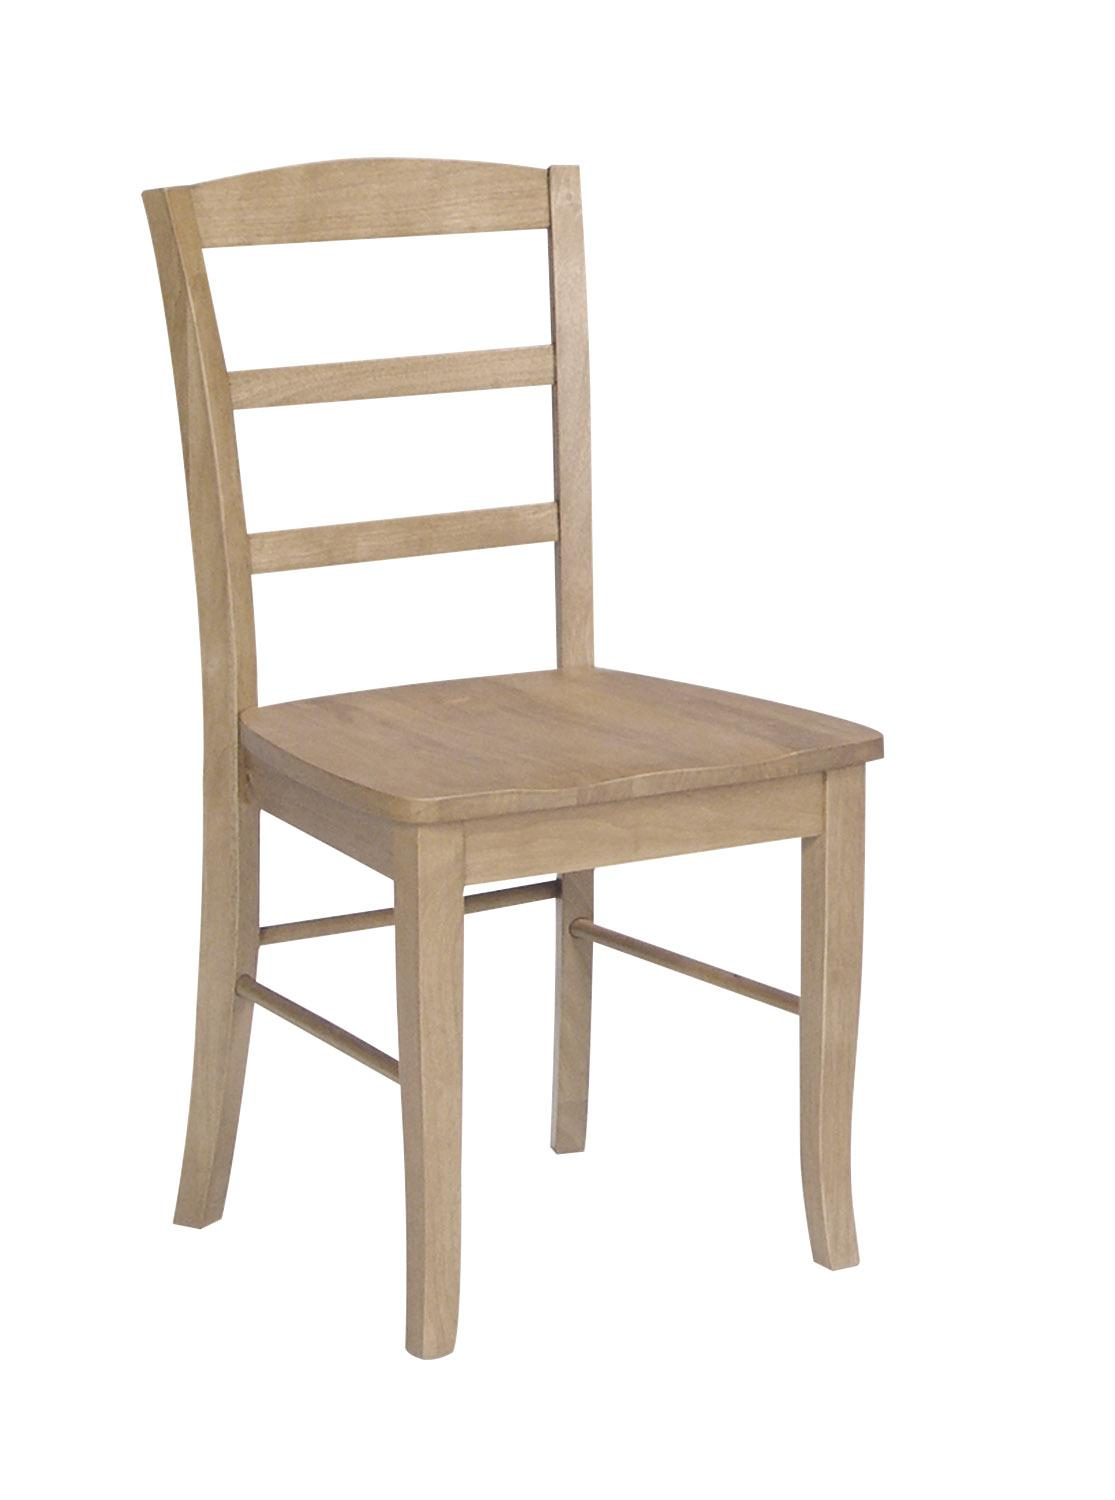 John Thomas Dining Essentials Ladderback Side Chair - Item Number: C01-2